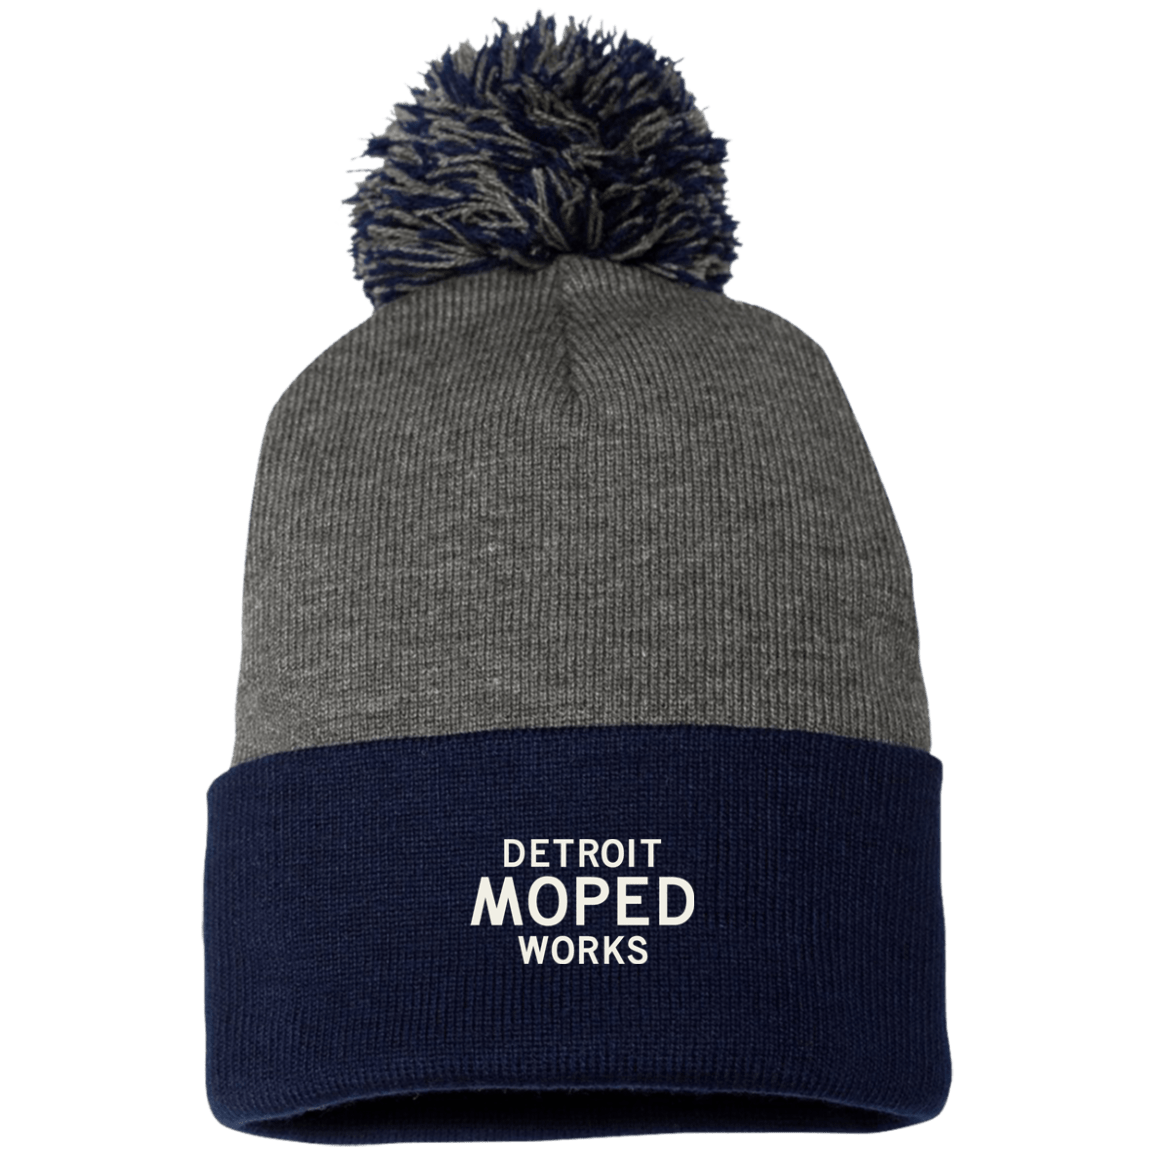 Fun-Detroit-Moped-Works-knit-caps-with-pom-poms-navy-dark-heather.png